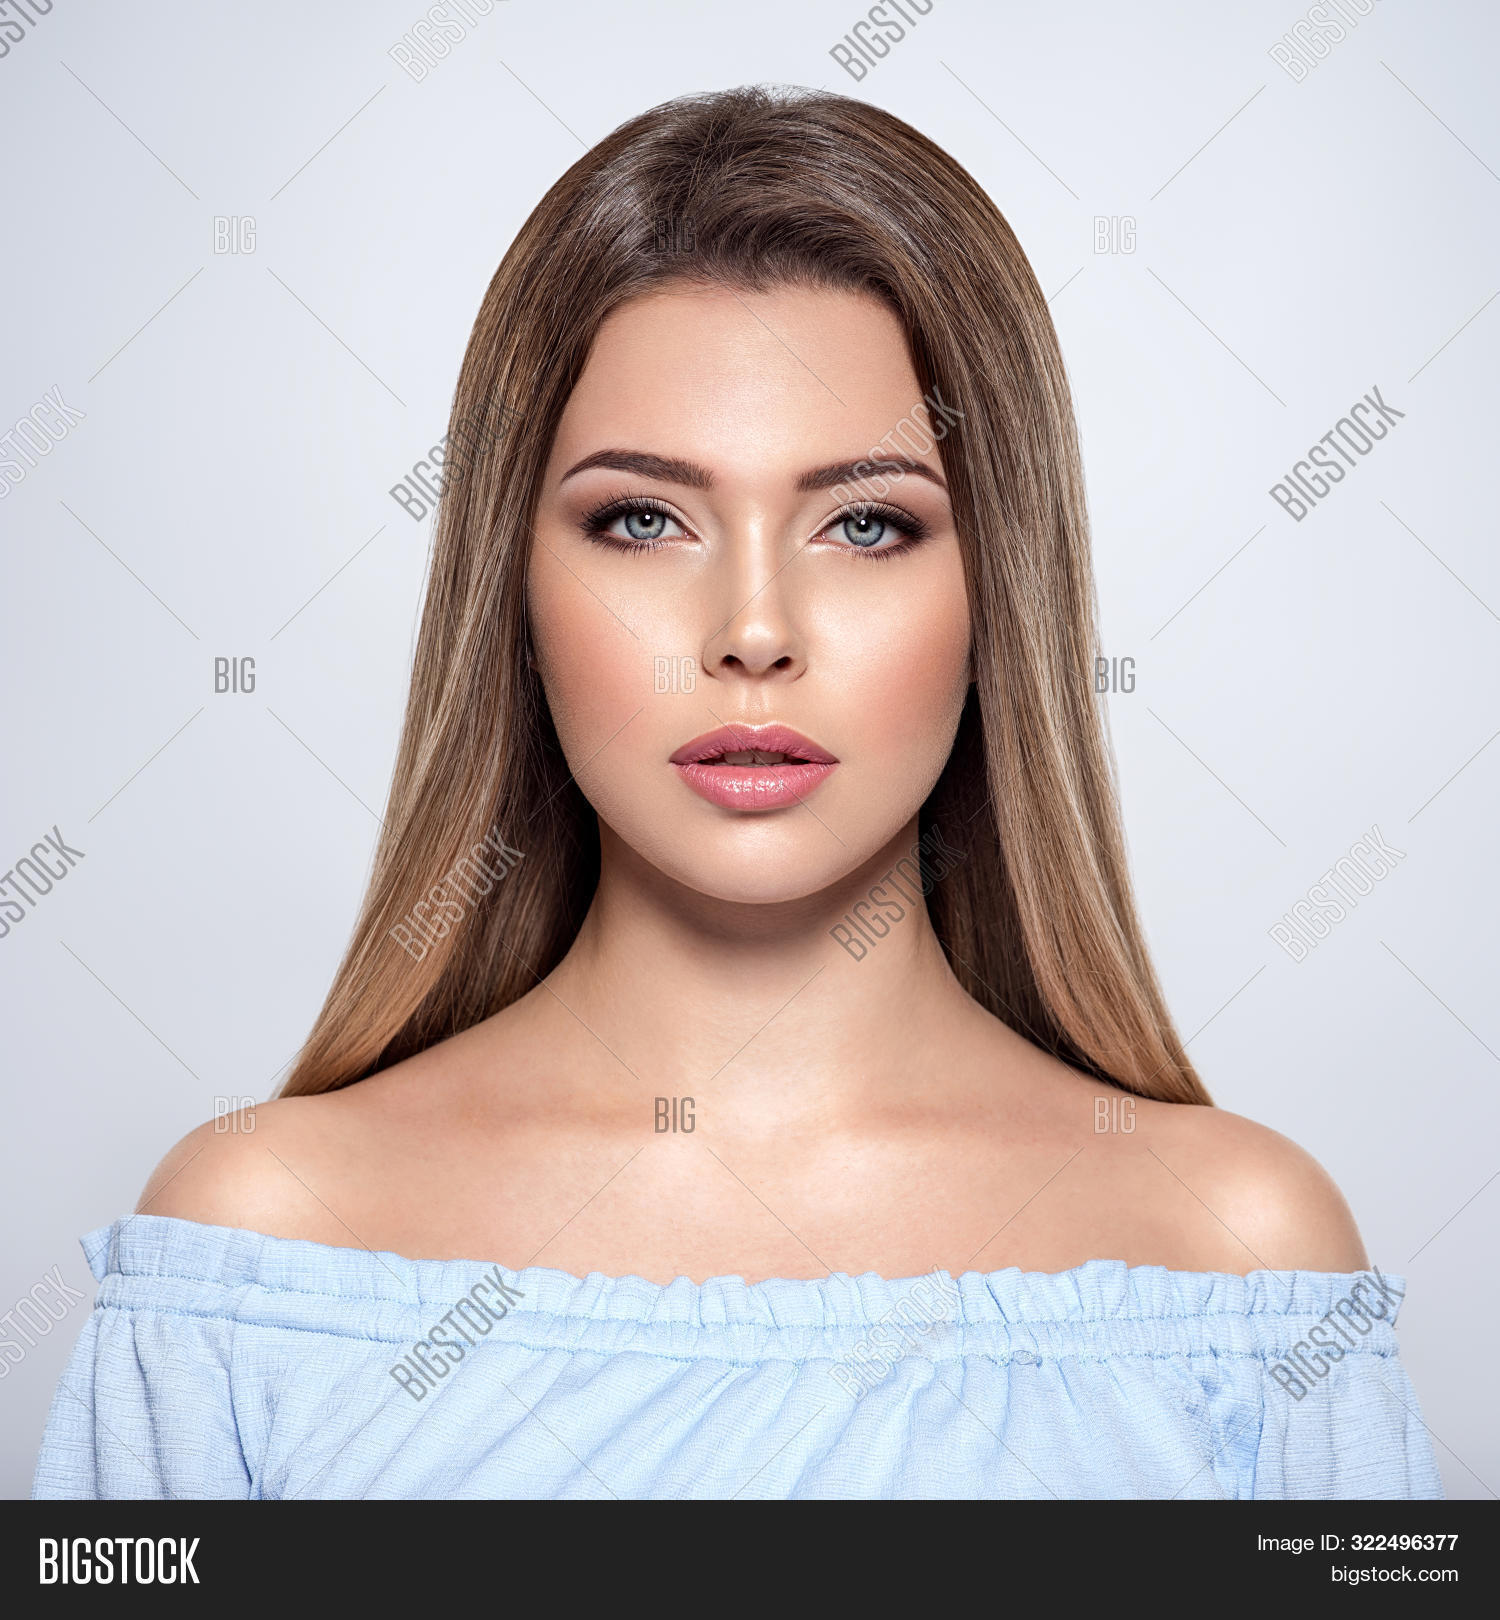 attractive,beautiful,beauty,blond,brown hair,caucasian,closeup,face,fashion,female,front,front portrait,girl,glamour,glossy,gray background,hair,hairstyle,long,long hair,make-up,makeup,model,one,portrait,posing,pretty,straight,straight hair,studio,style,vertical,white,woman,young